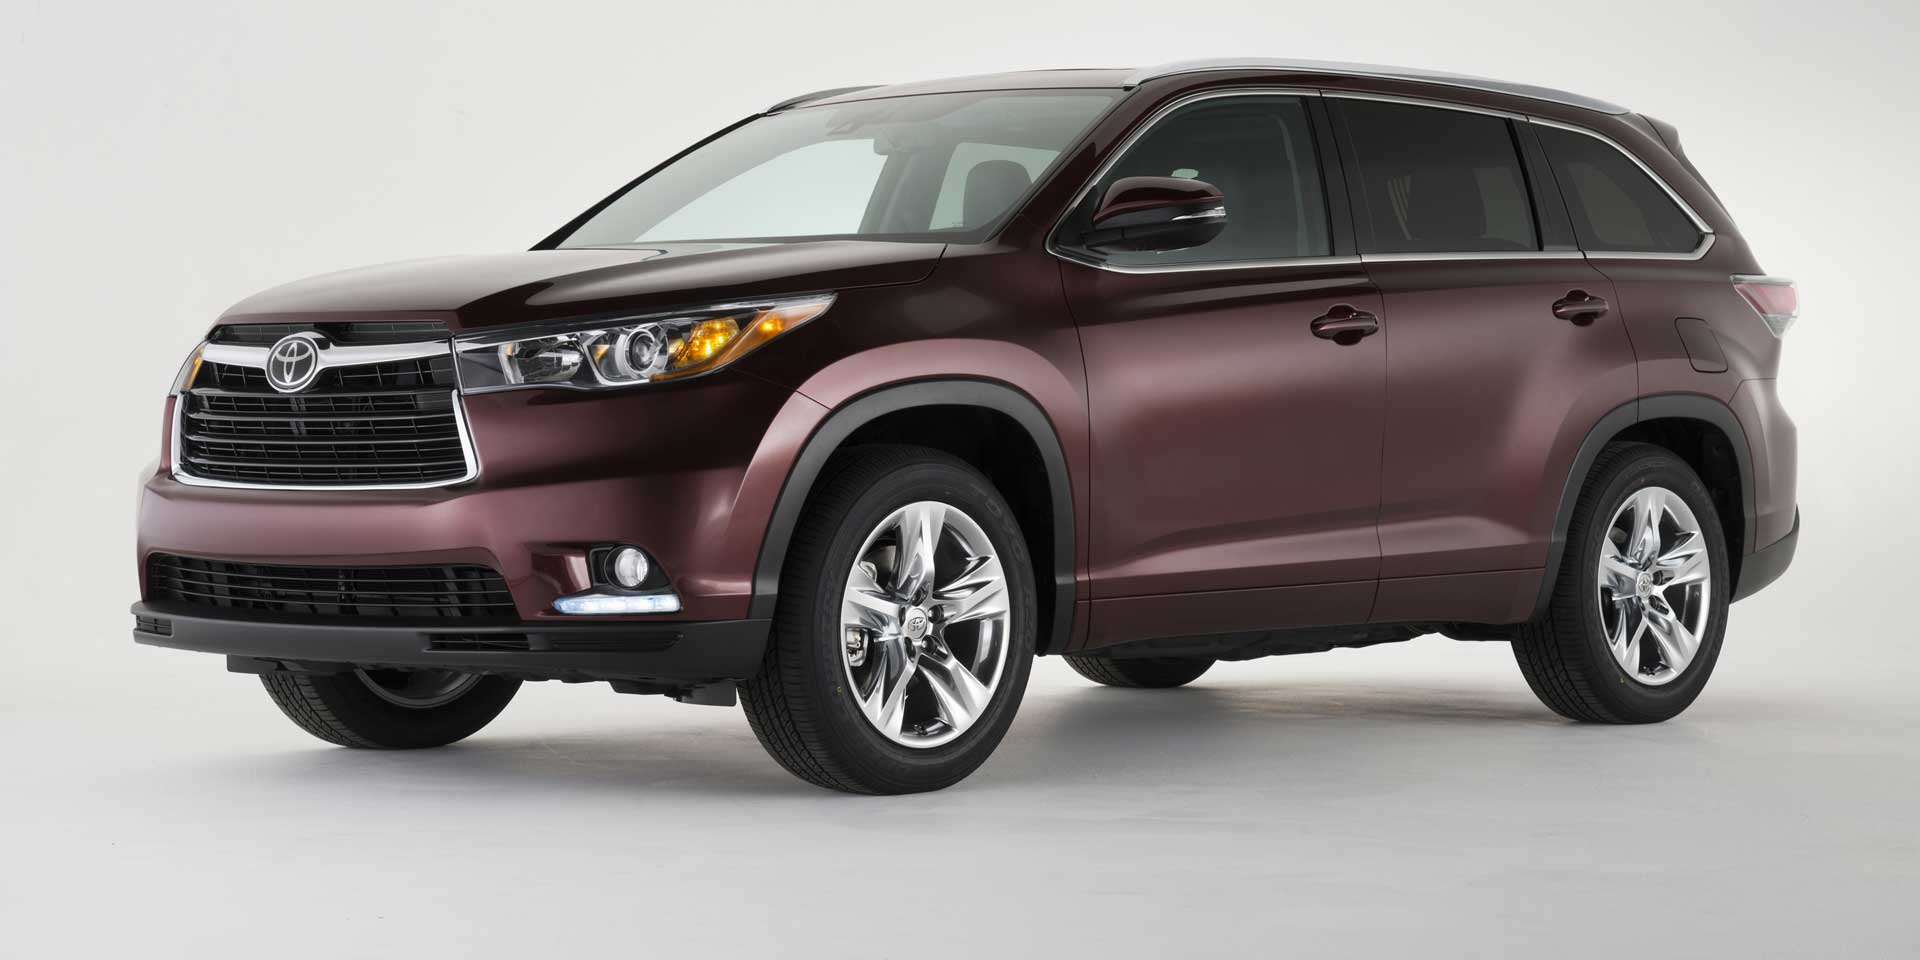 2015 Toyota Highlander Limbaugh